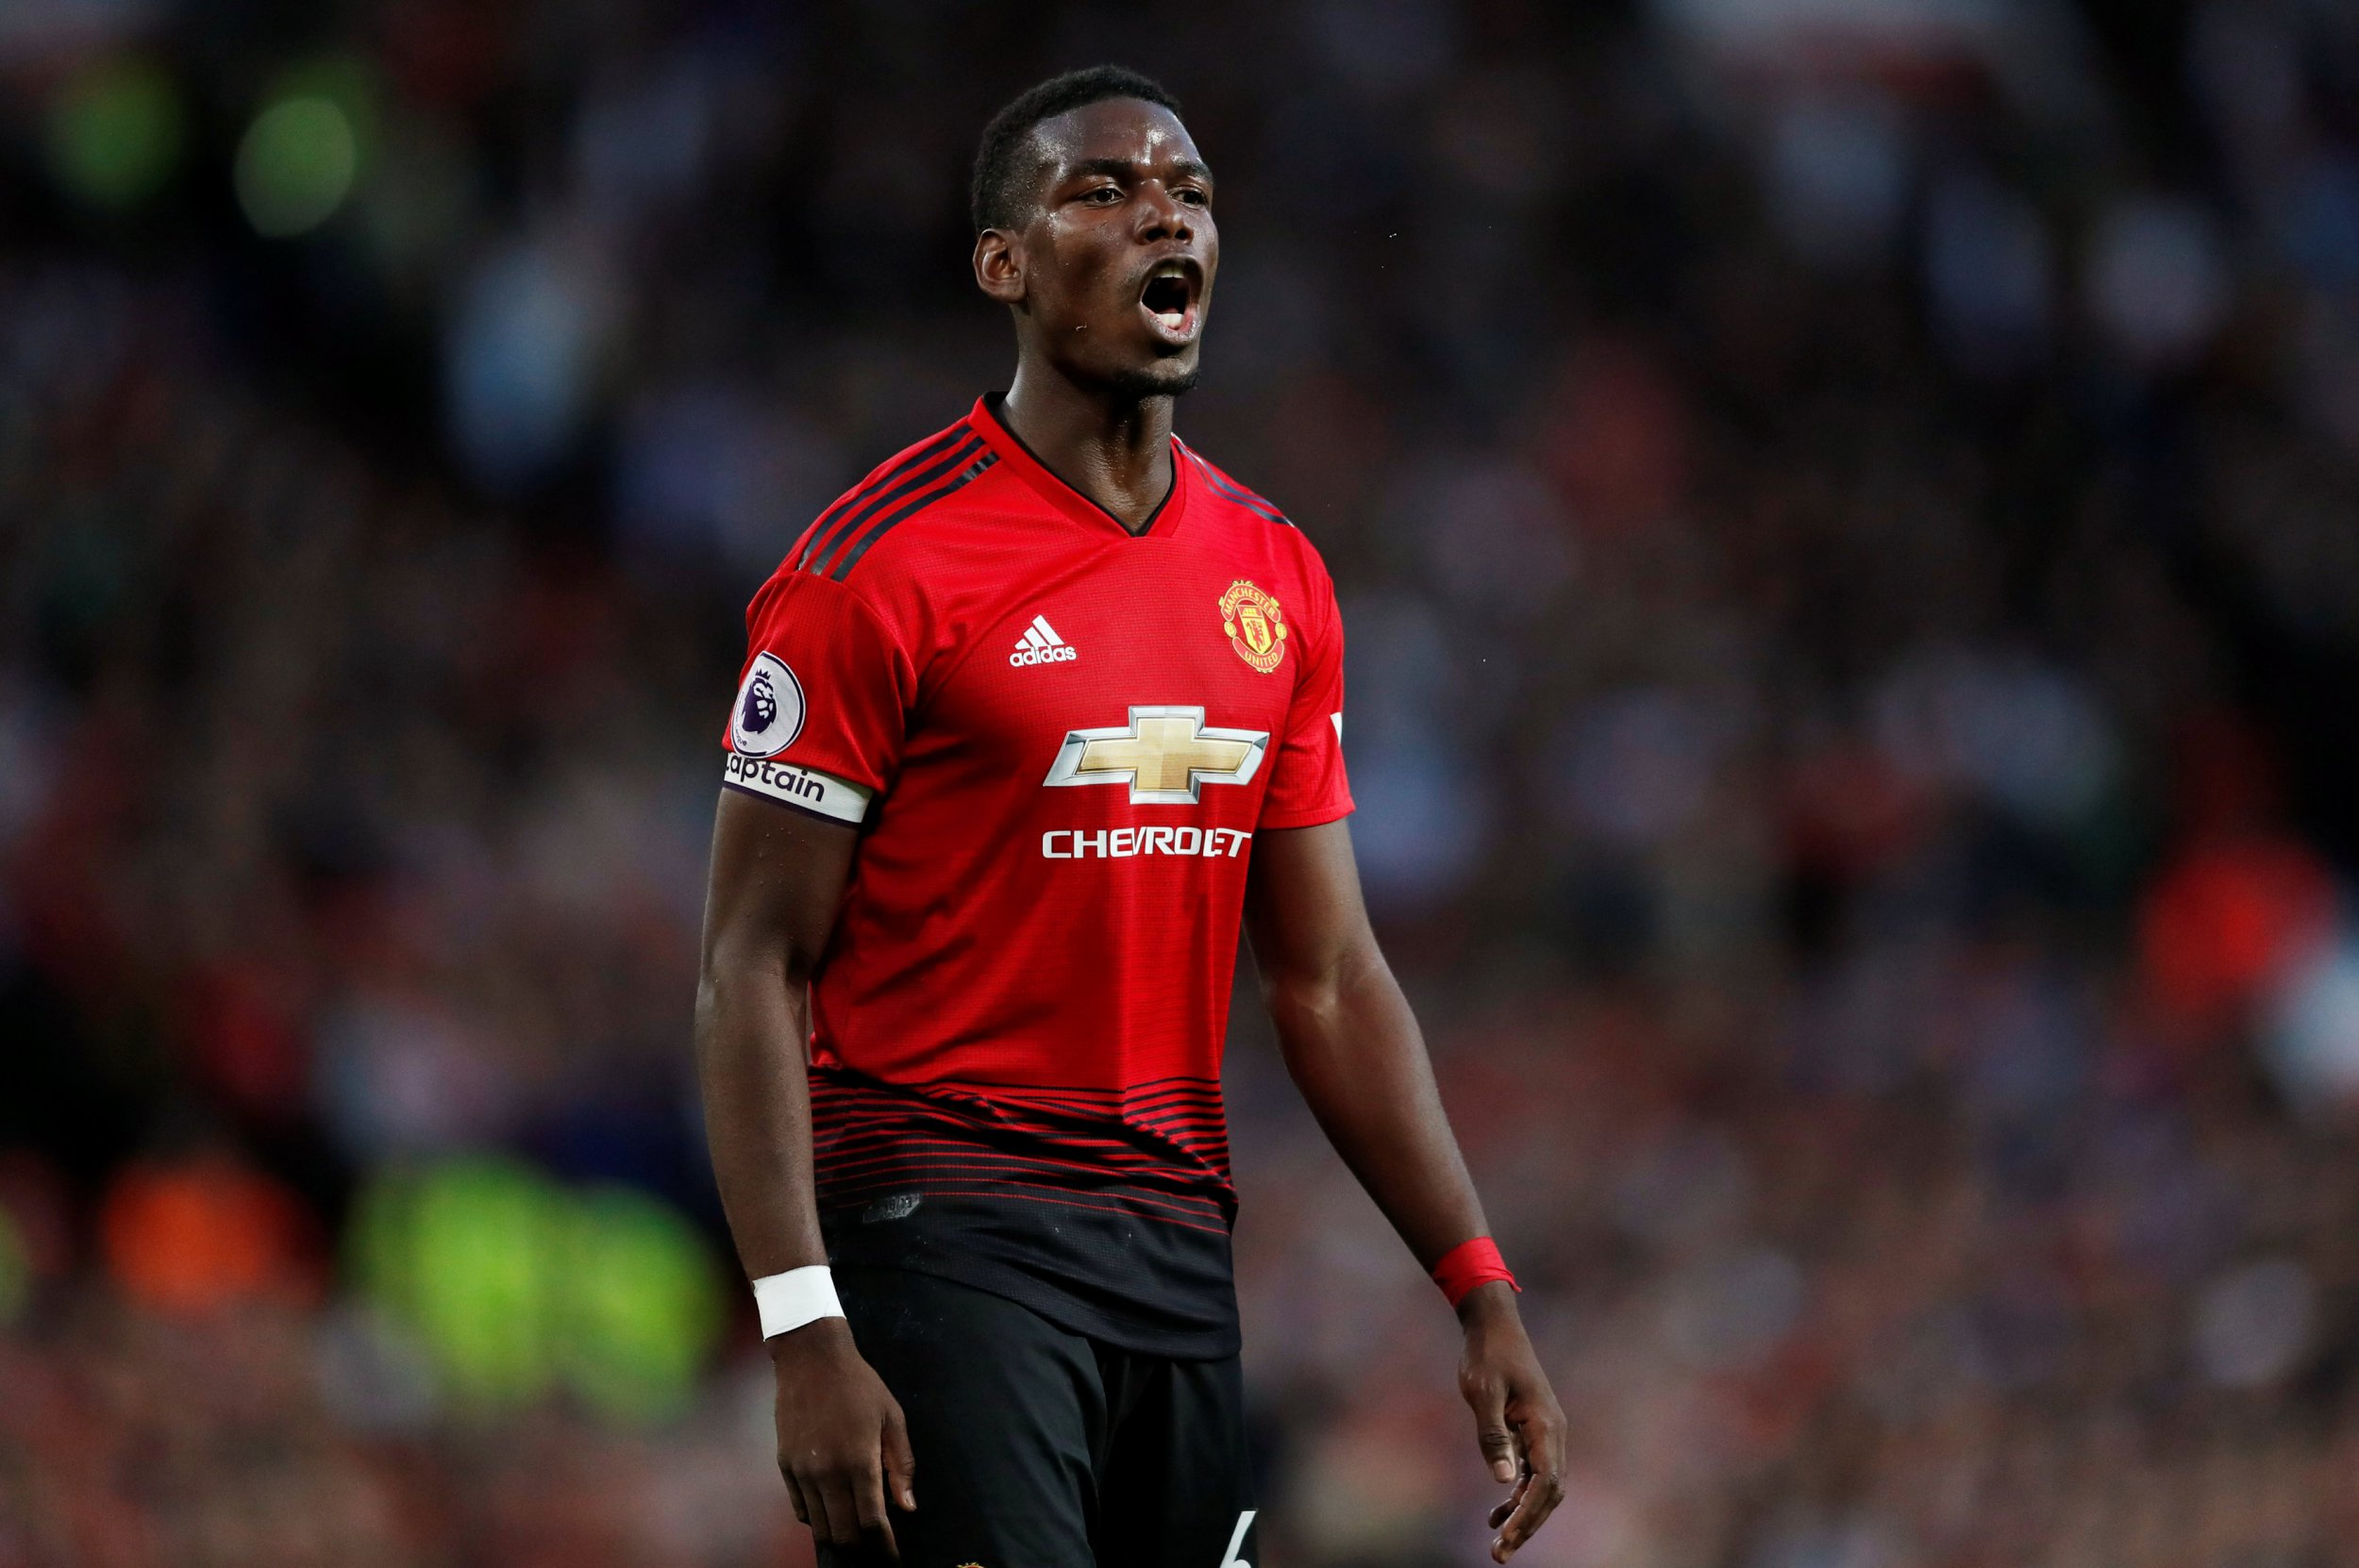 "Soccer Football - Premier League - Manchester United v Leicester City - Old Trafford, Manchester, Britain - August 10, 2018 Manchester United's Paul Pogba Action Images via Reuters/Andrew Boyers EDITORIAL USE ONLY. No use with unauthorized audio, video, data, fixture lists, club/league logos or ""live"" services. Online in-match use limited to 75 images, no video emulation. No use in betting, games or single club/league/player publications. Please contact your account representative for further details."